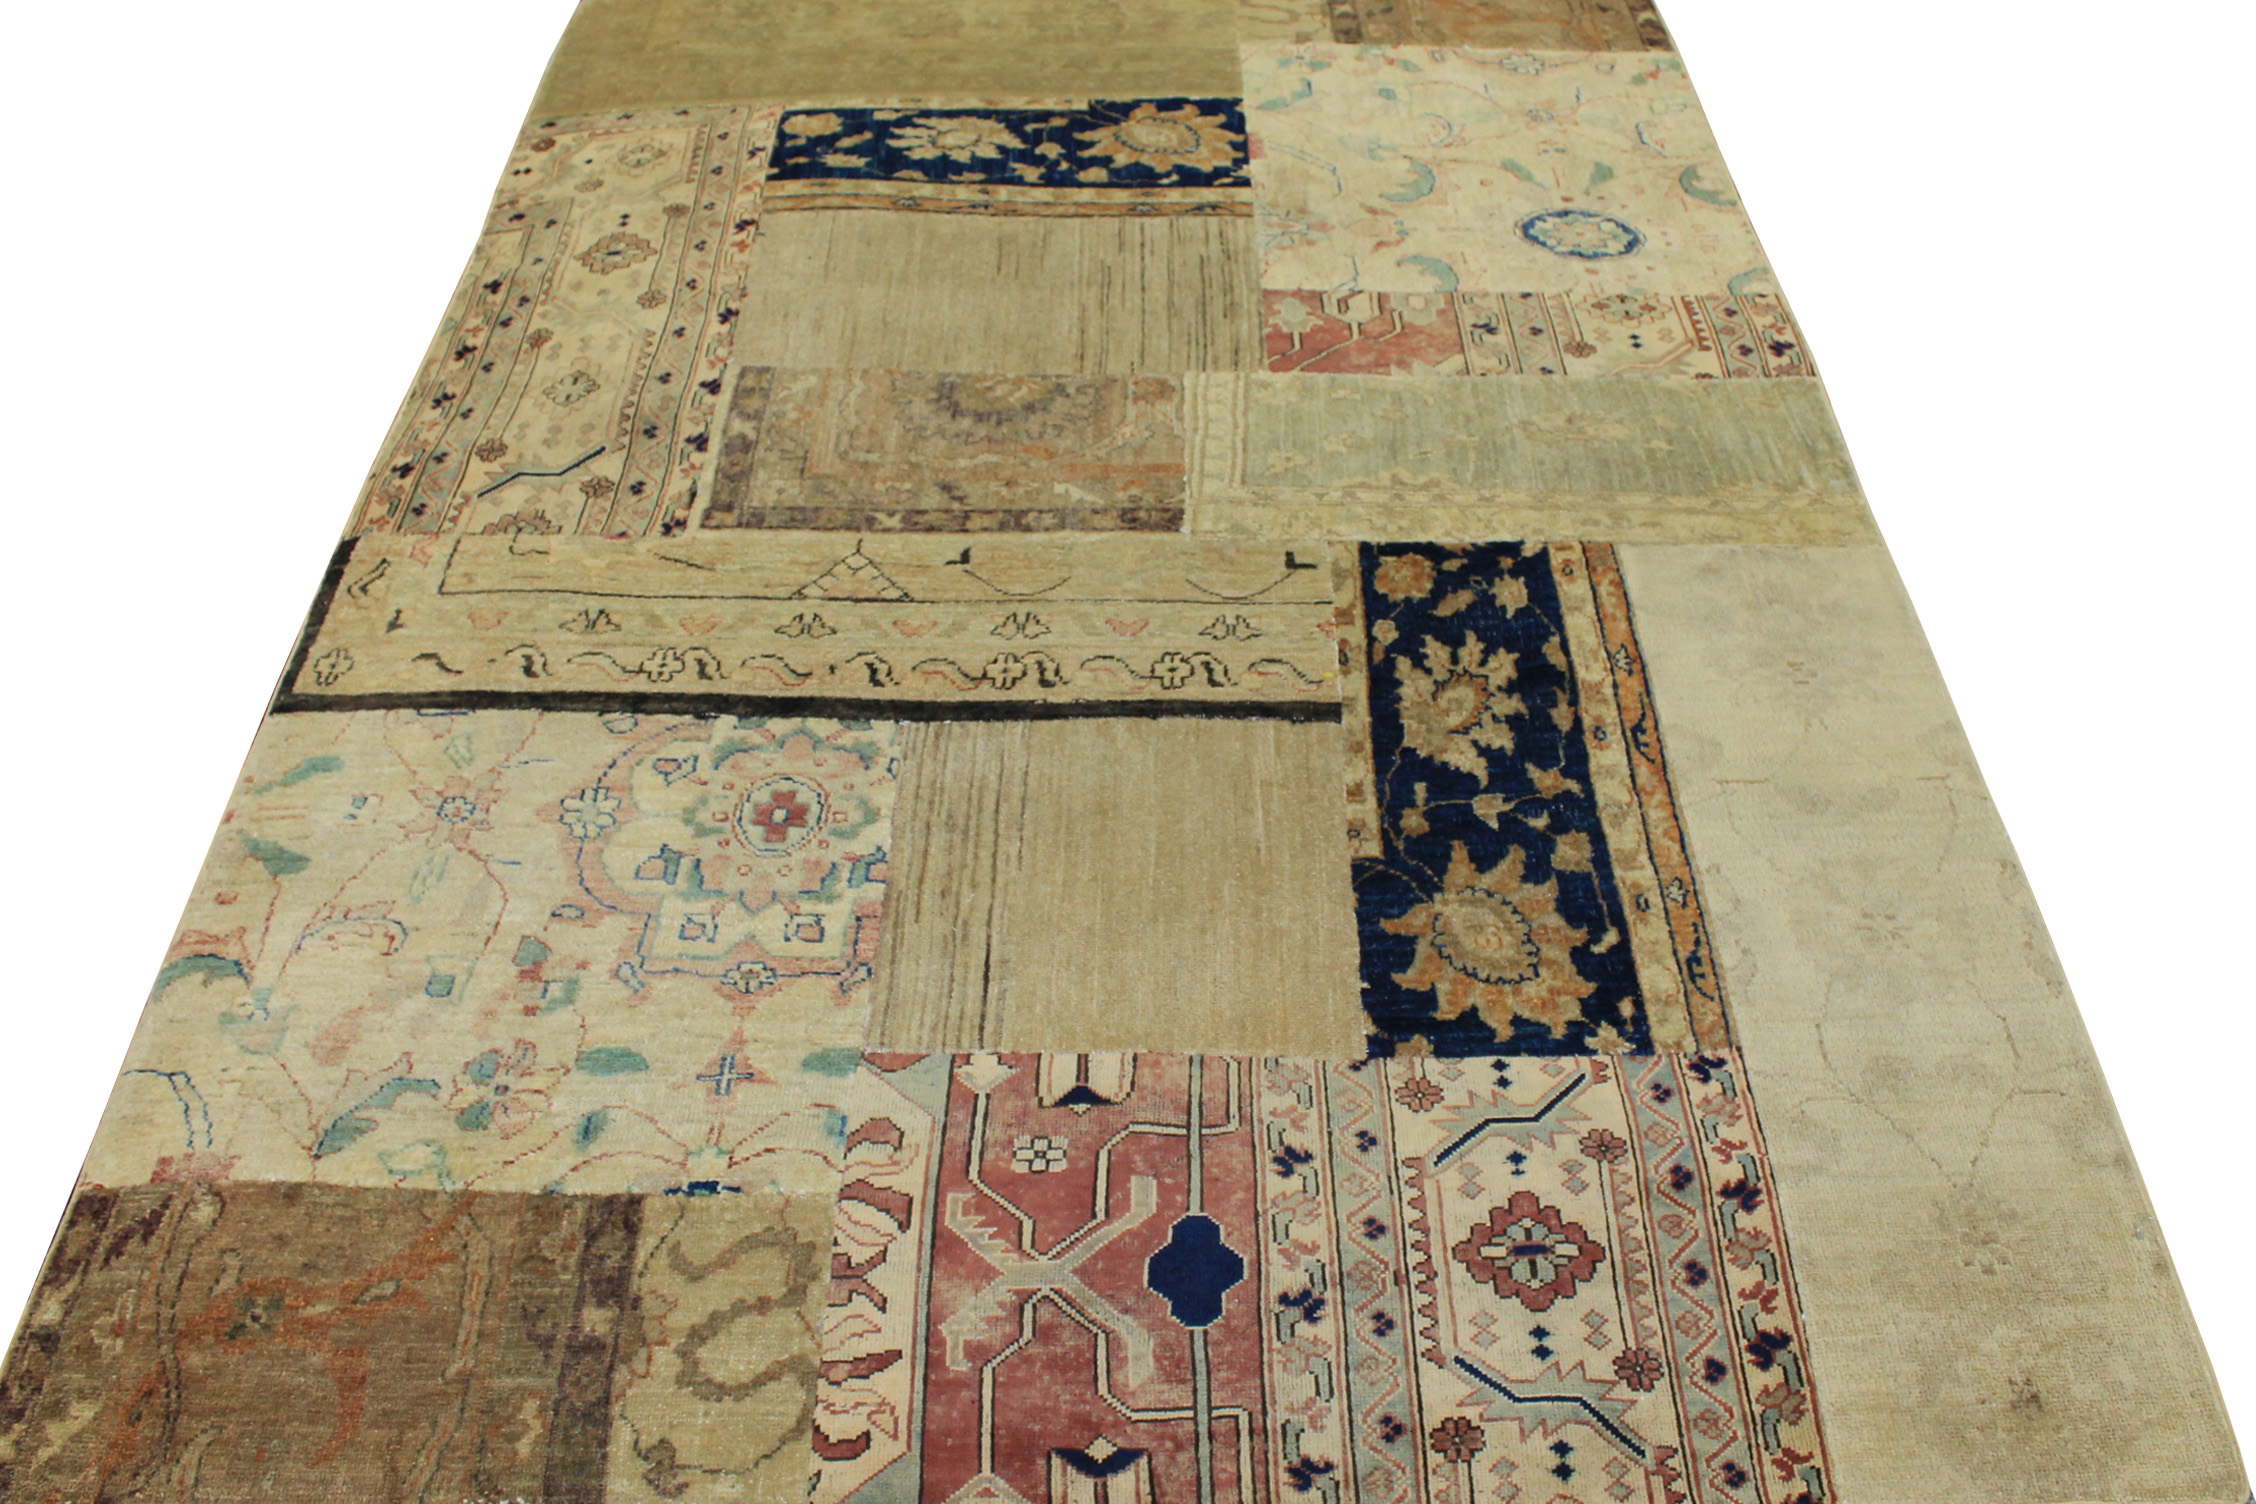 5x7/8 Peshawar Hand Knotted Wool Area Rug - MR12755